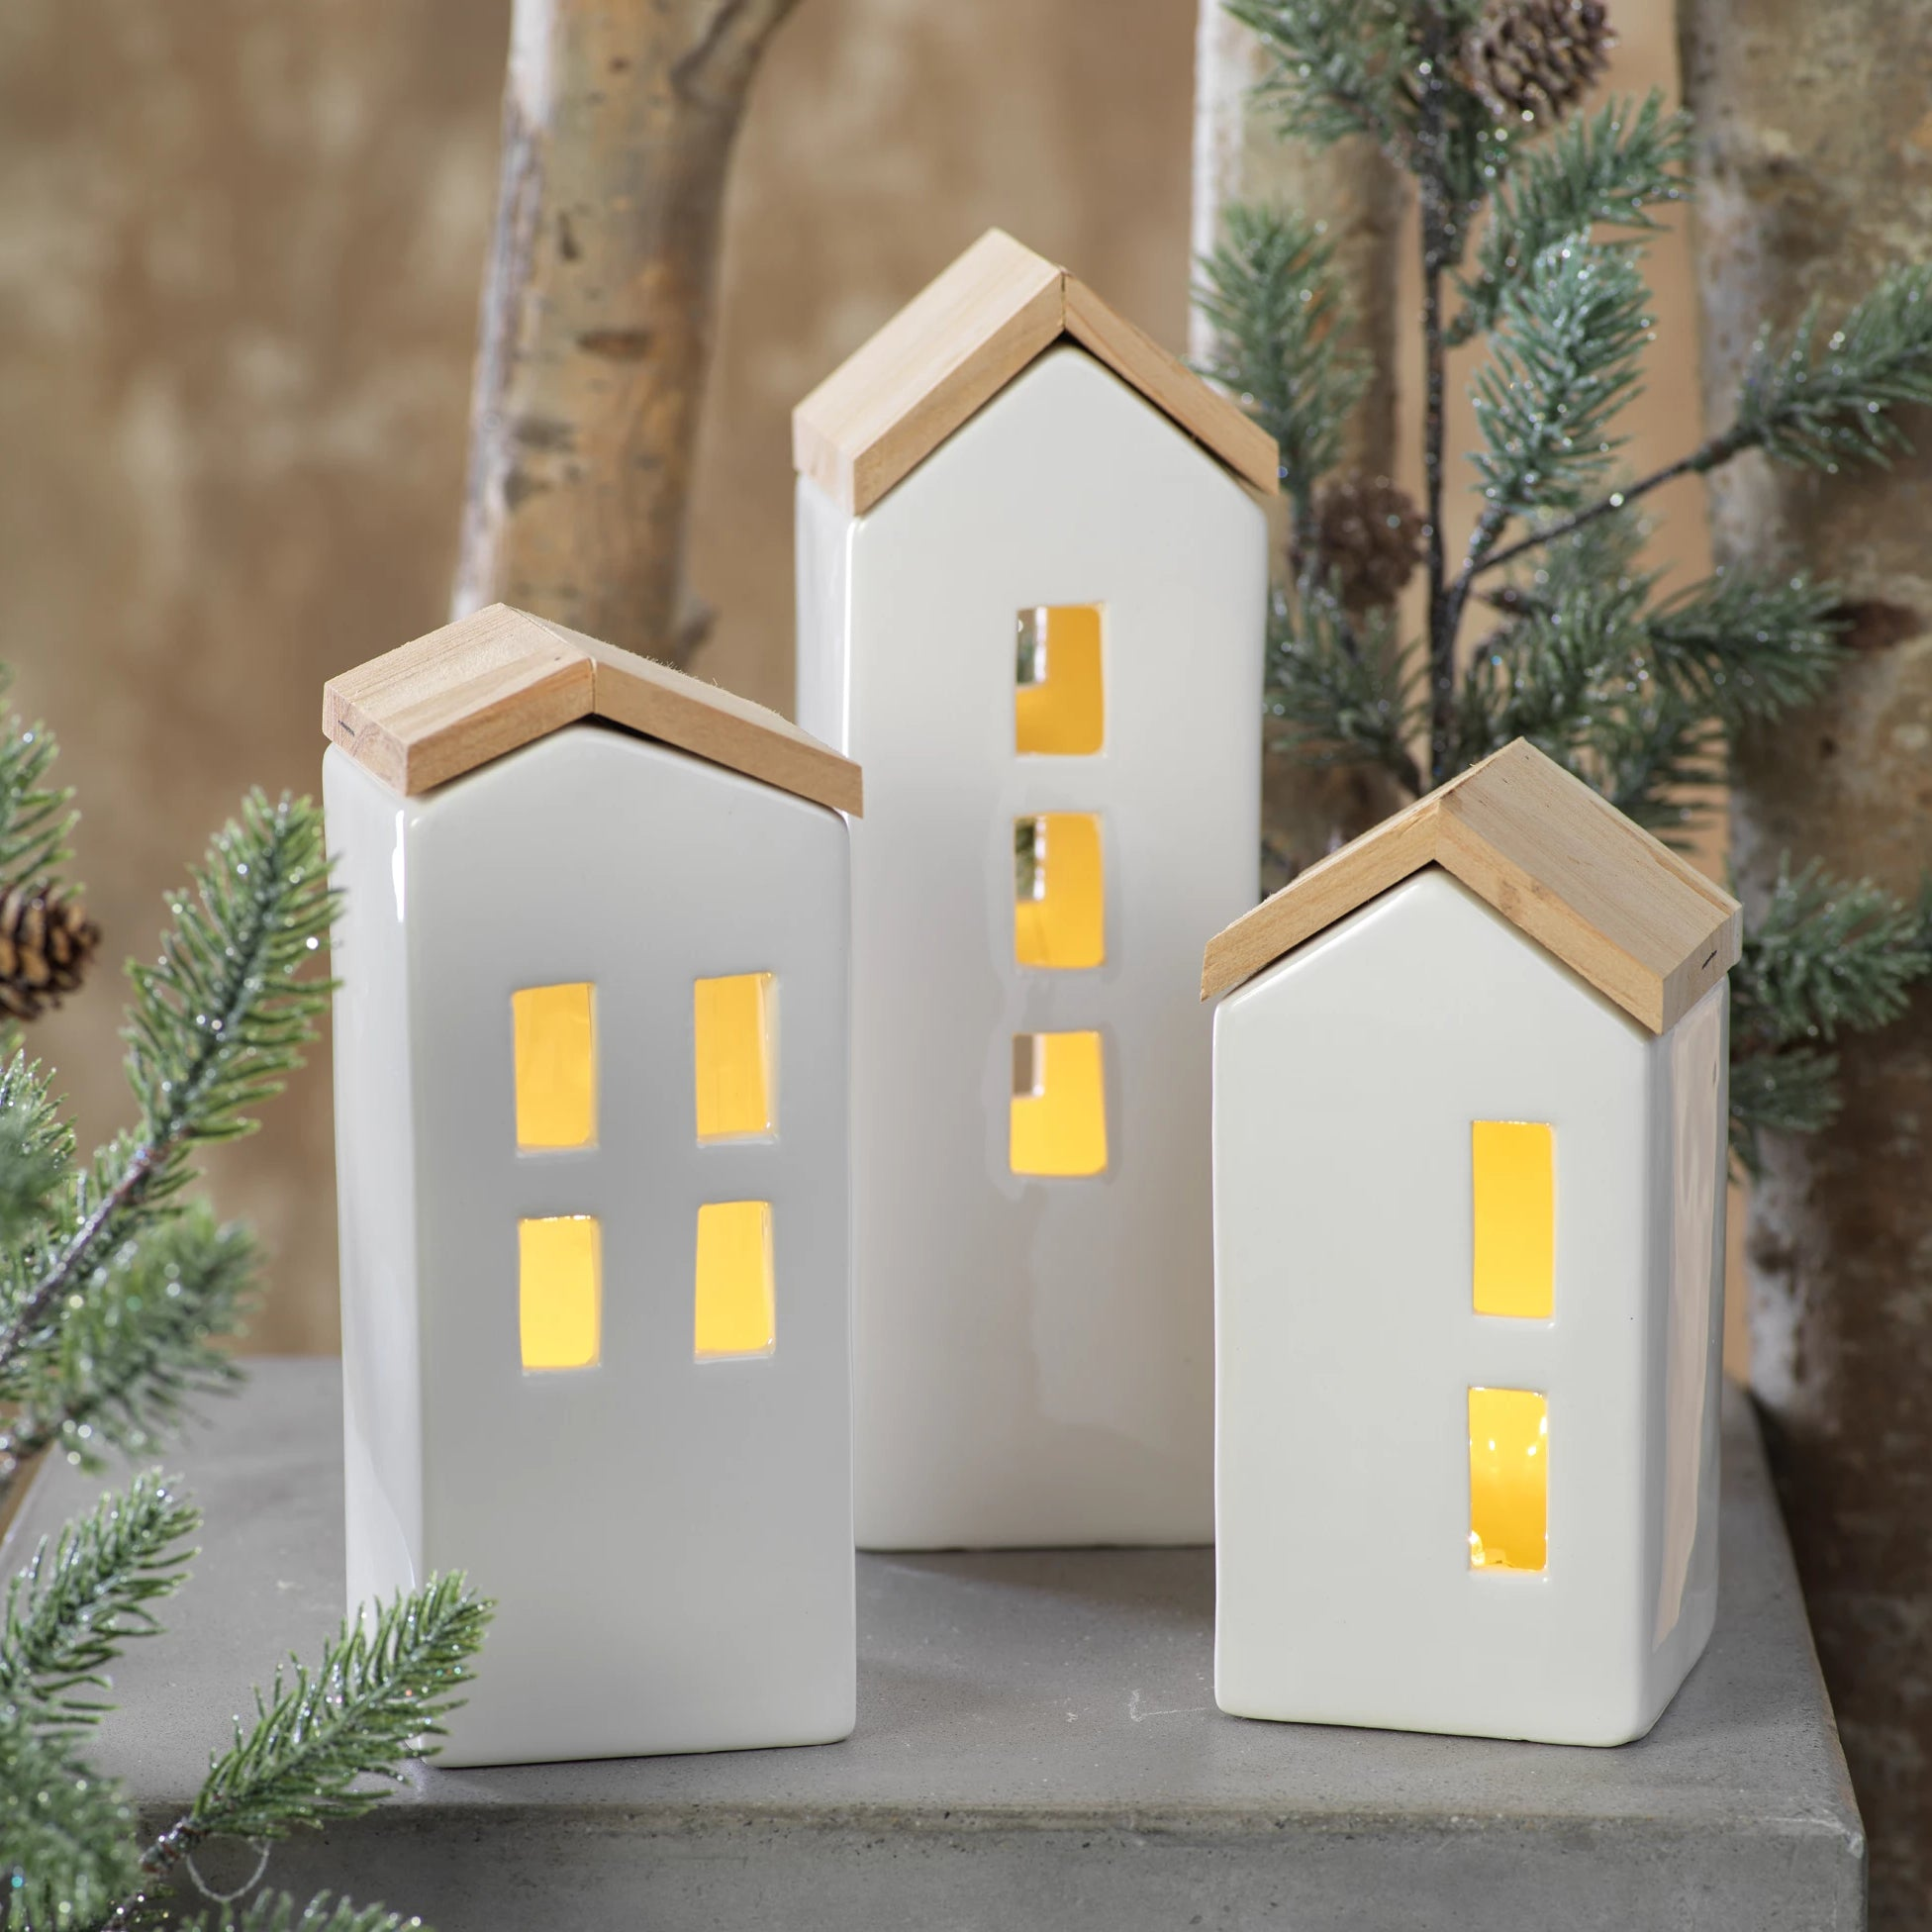 Set of 3 Ceramic LED Houses